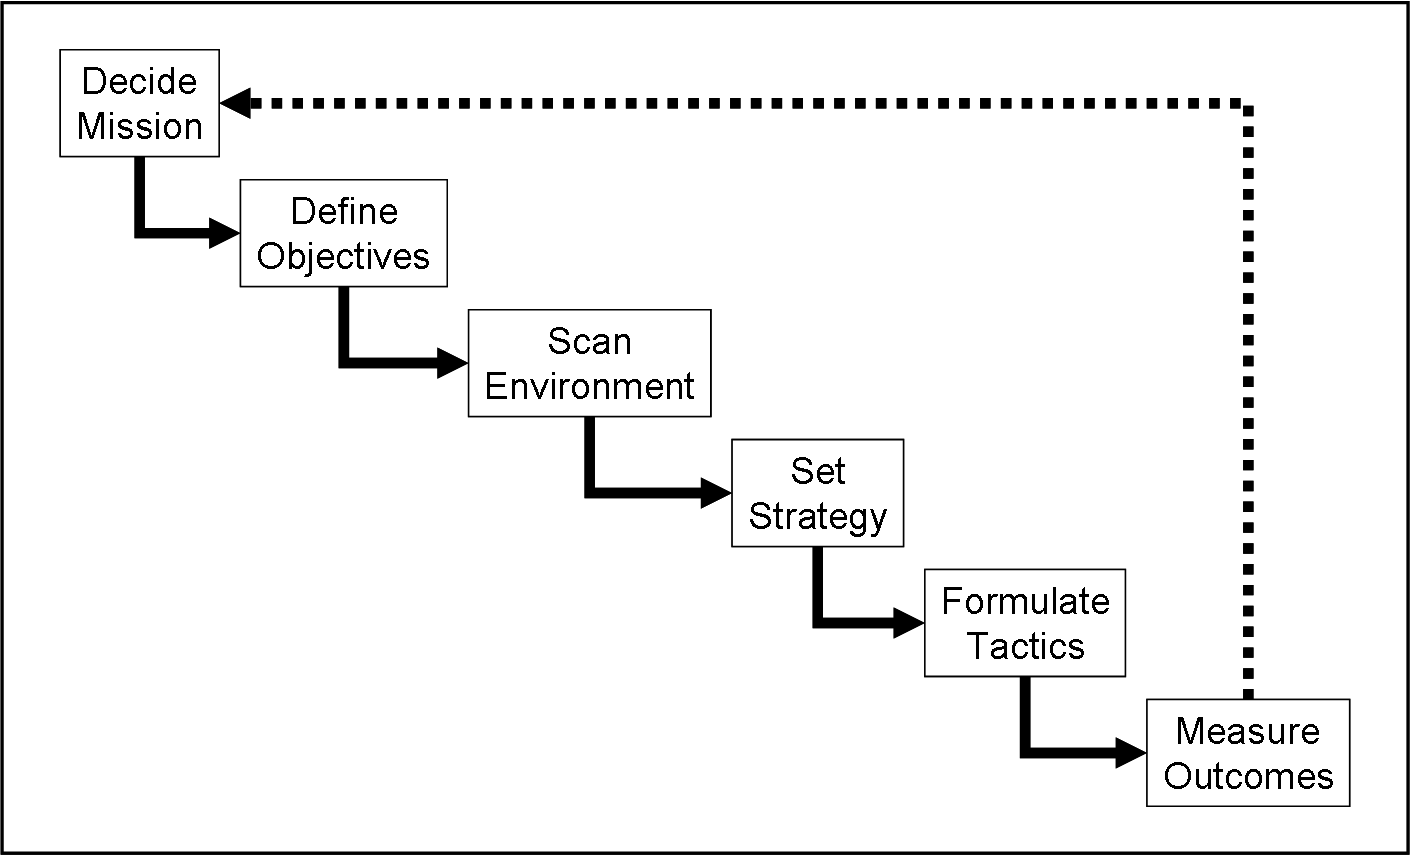 17 Best images about Strategic Planning Concepts on Pinterest ...